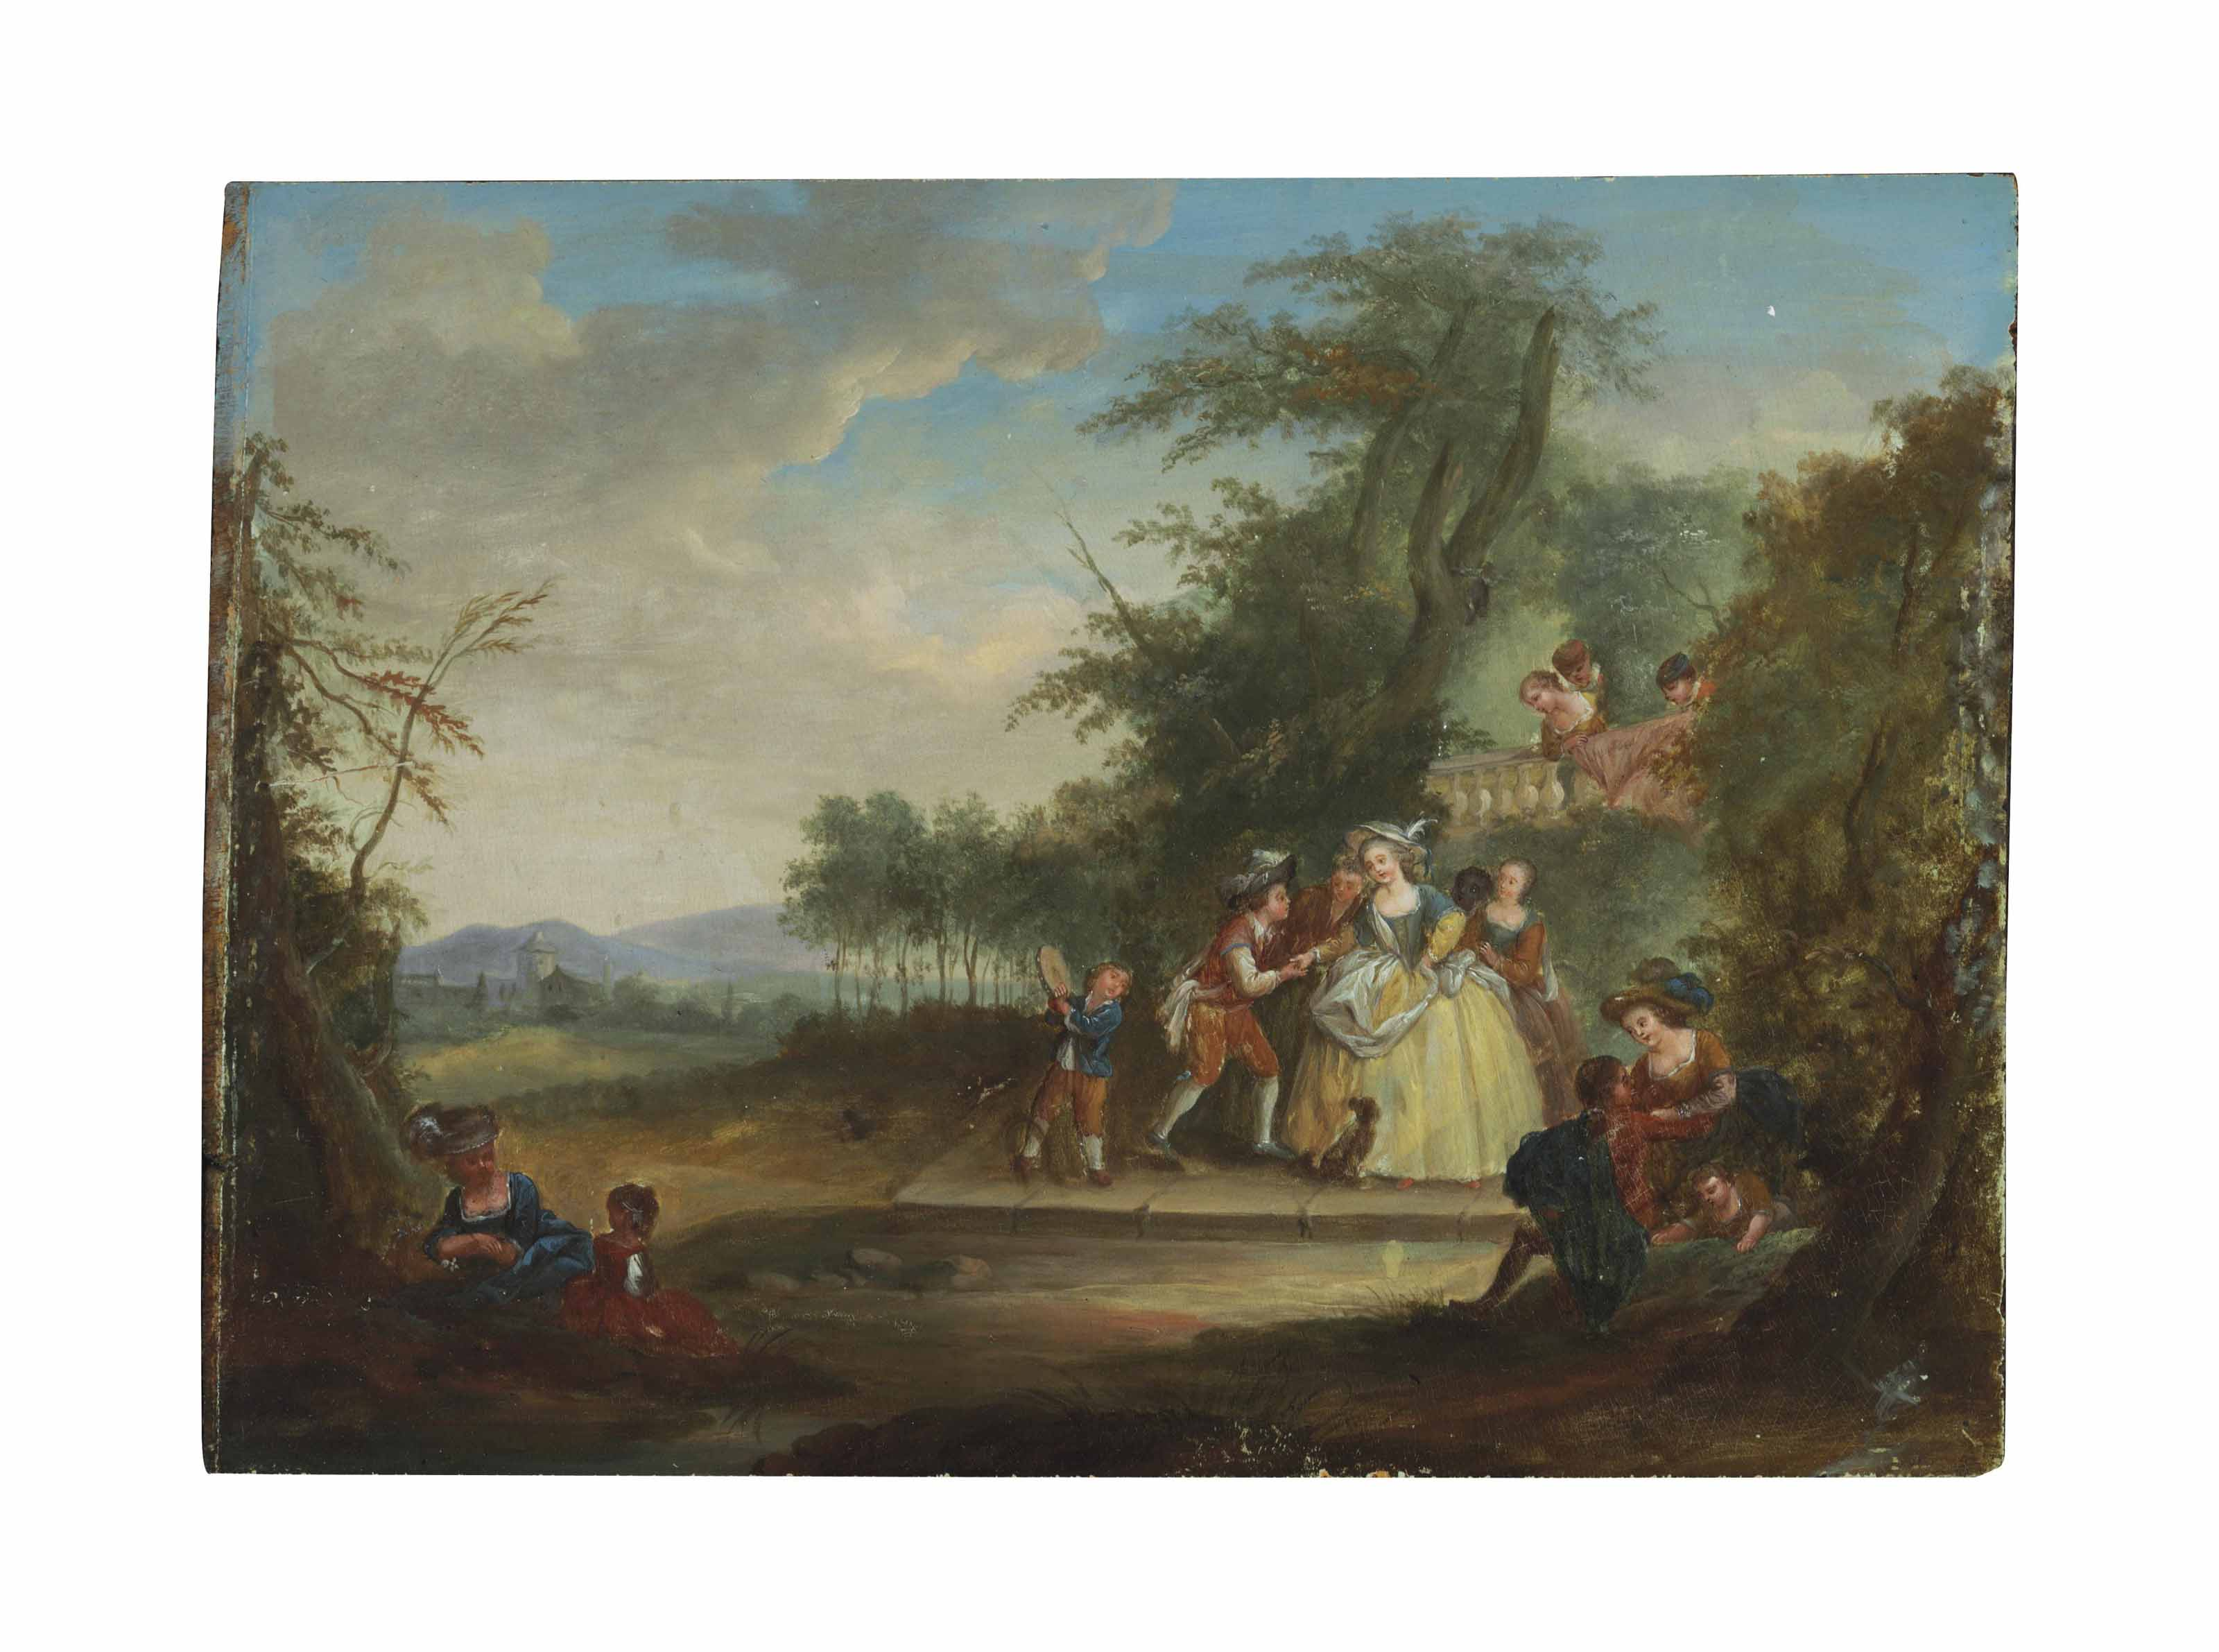 Fêtes Champêtres; and a companion painting